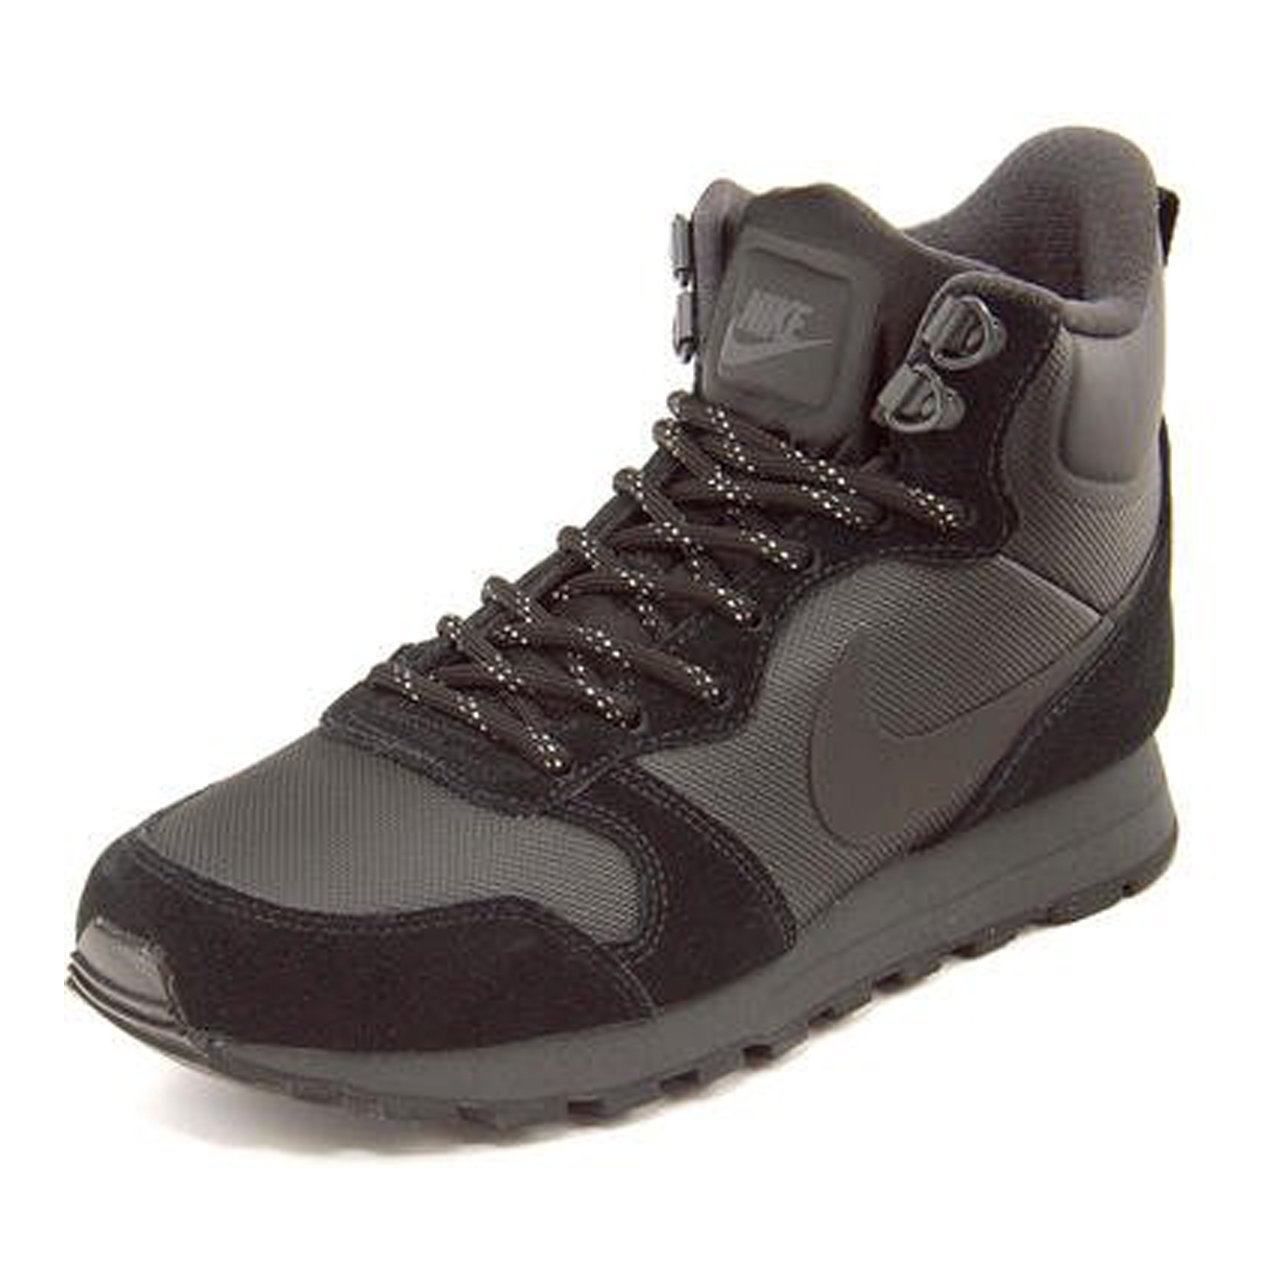 Nike Women's MD Runner 2 Mid Prem Black / Black - Anthracite 845059-001 (8.5)